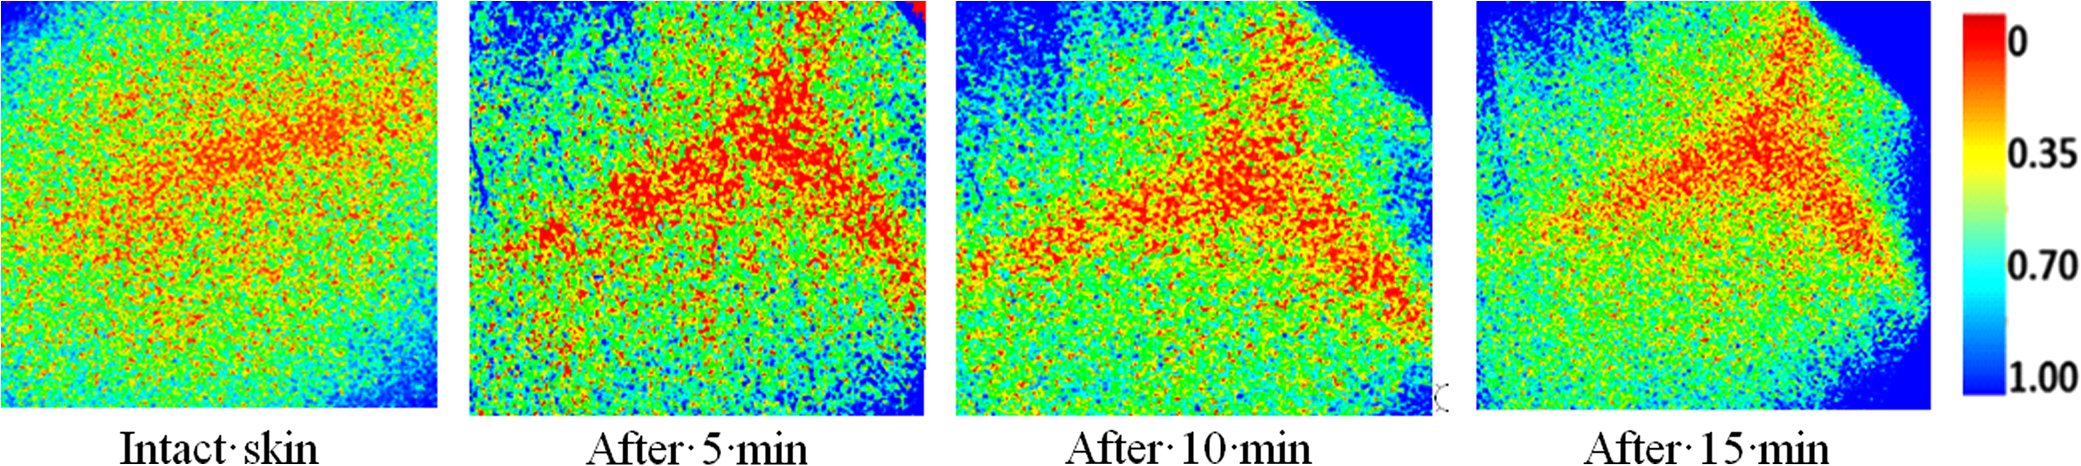 Measurement of tissue optical properties in the context of